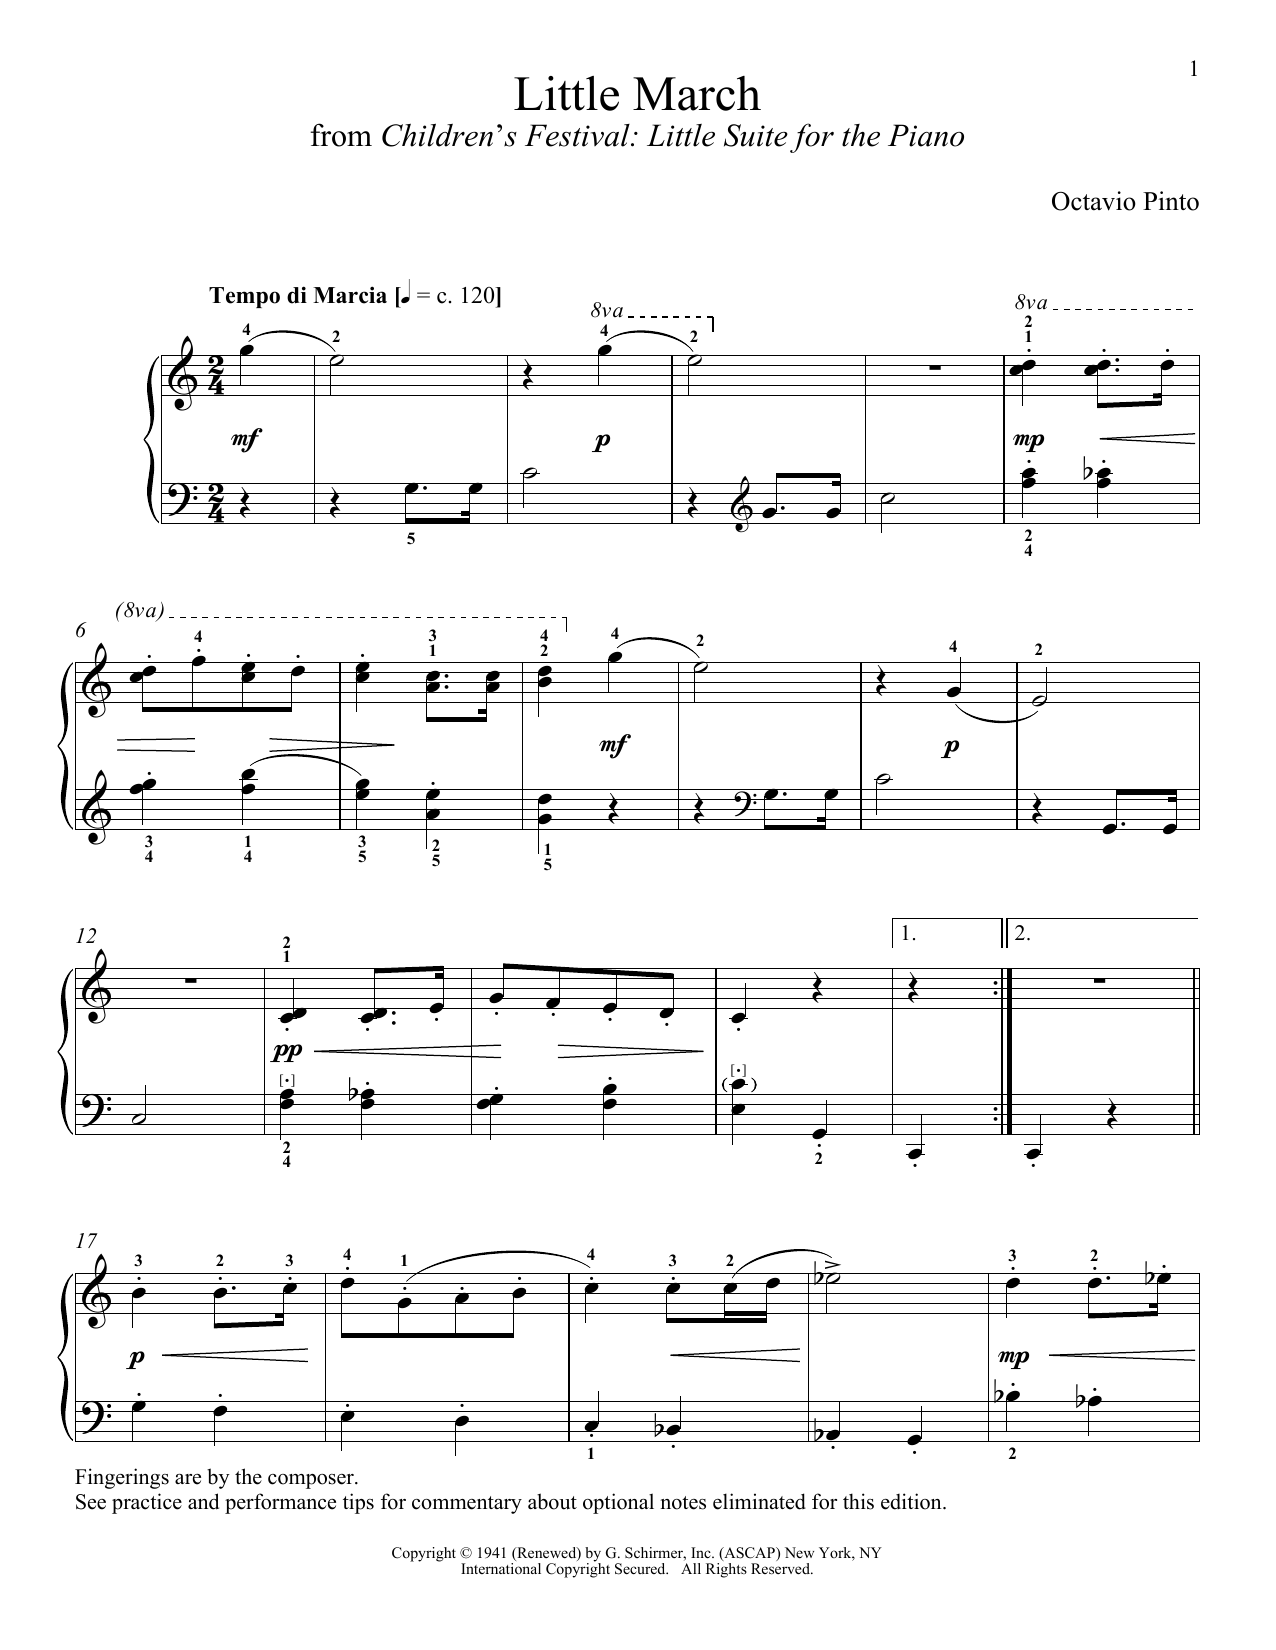 Octavio Pinto Little March sheet music notes and chords. Download Printable PDF.